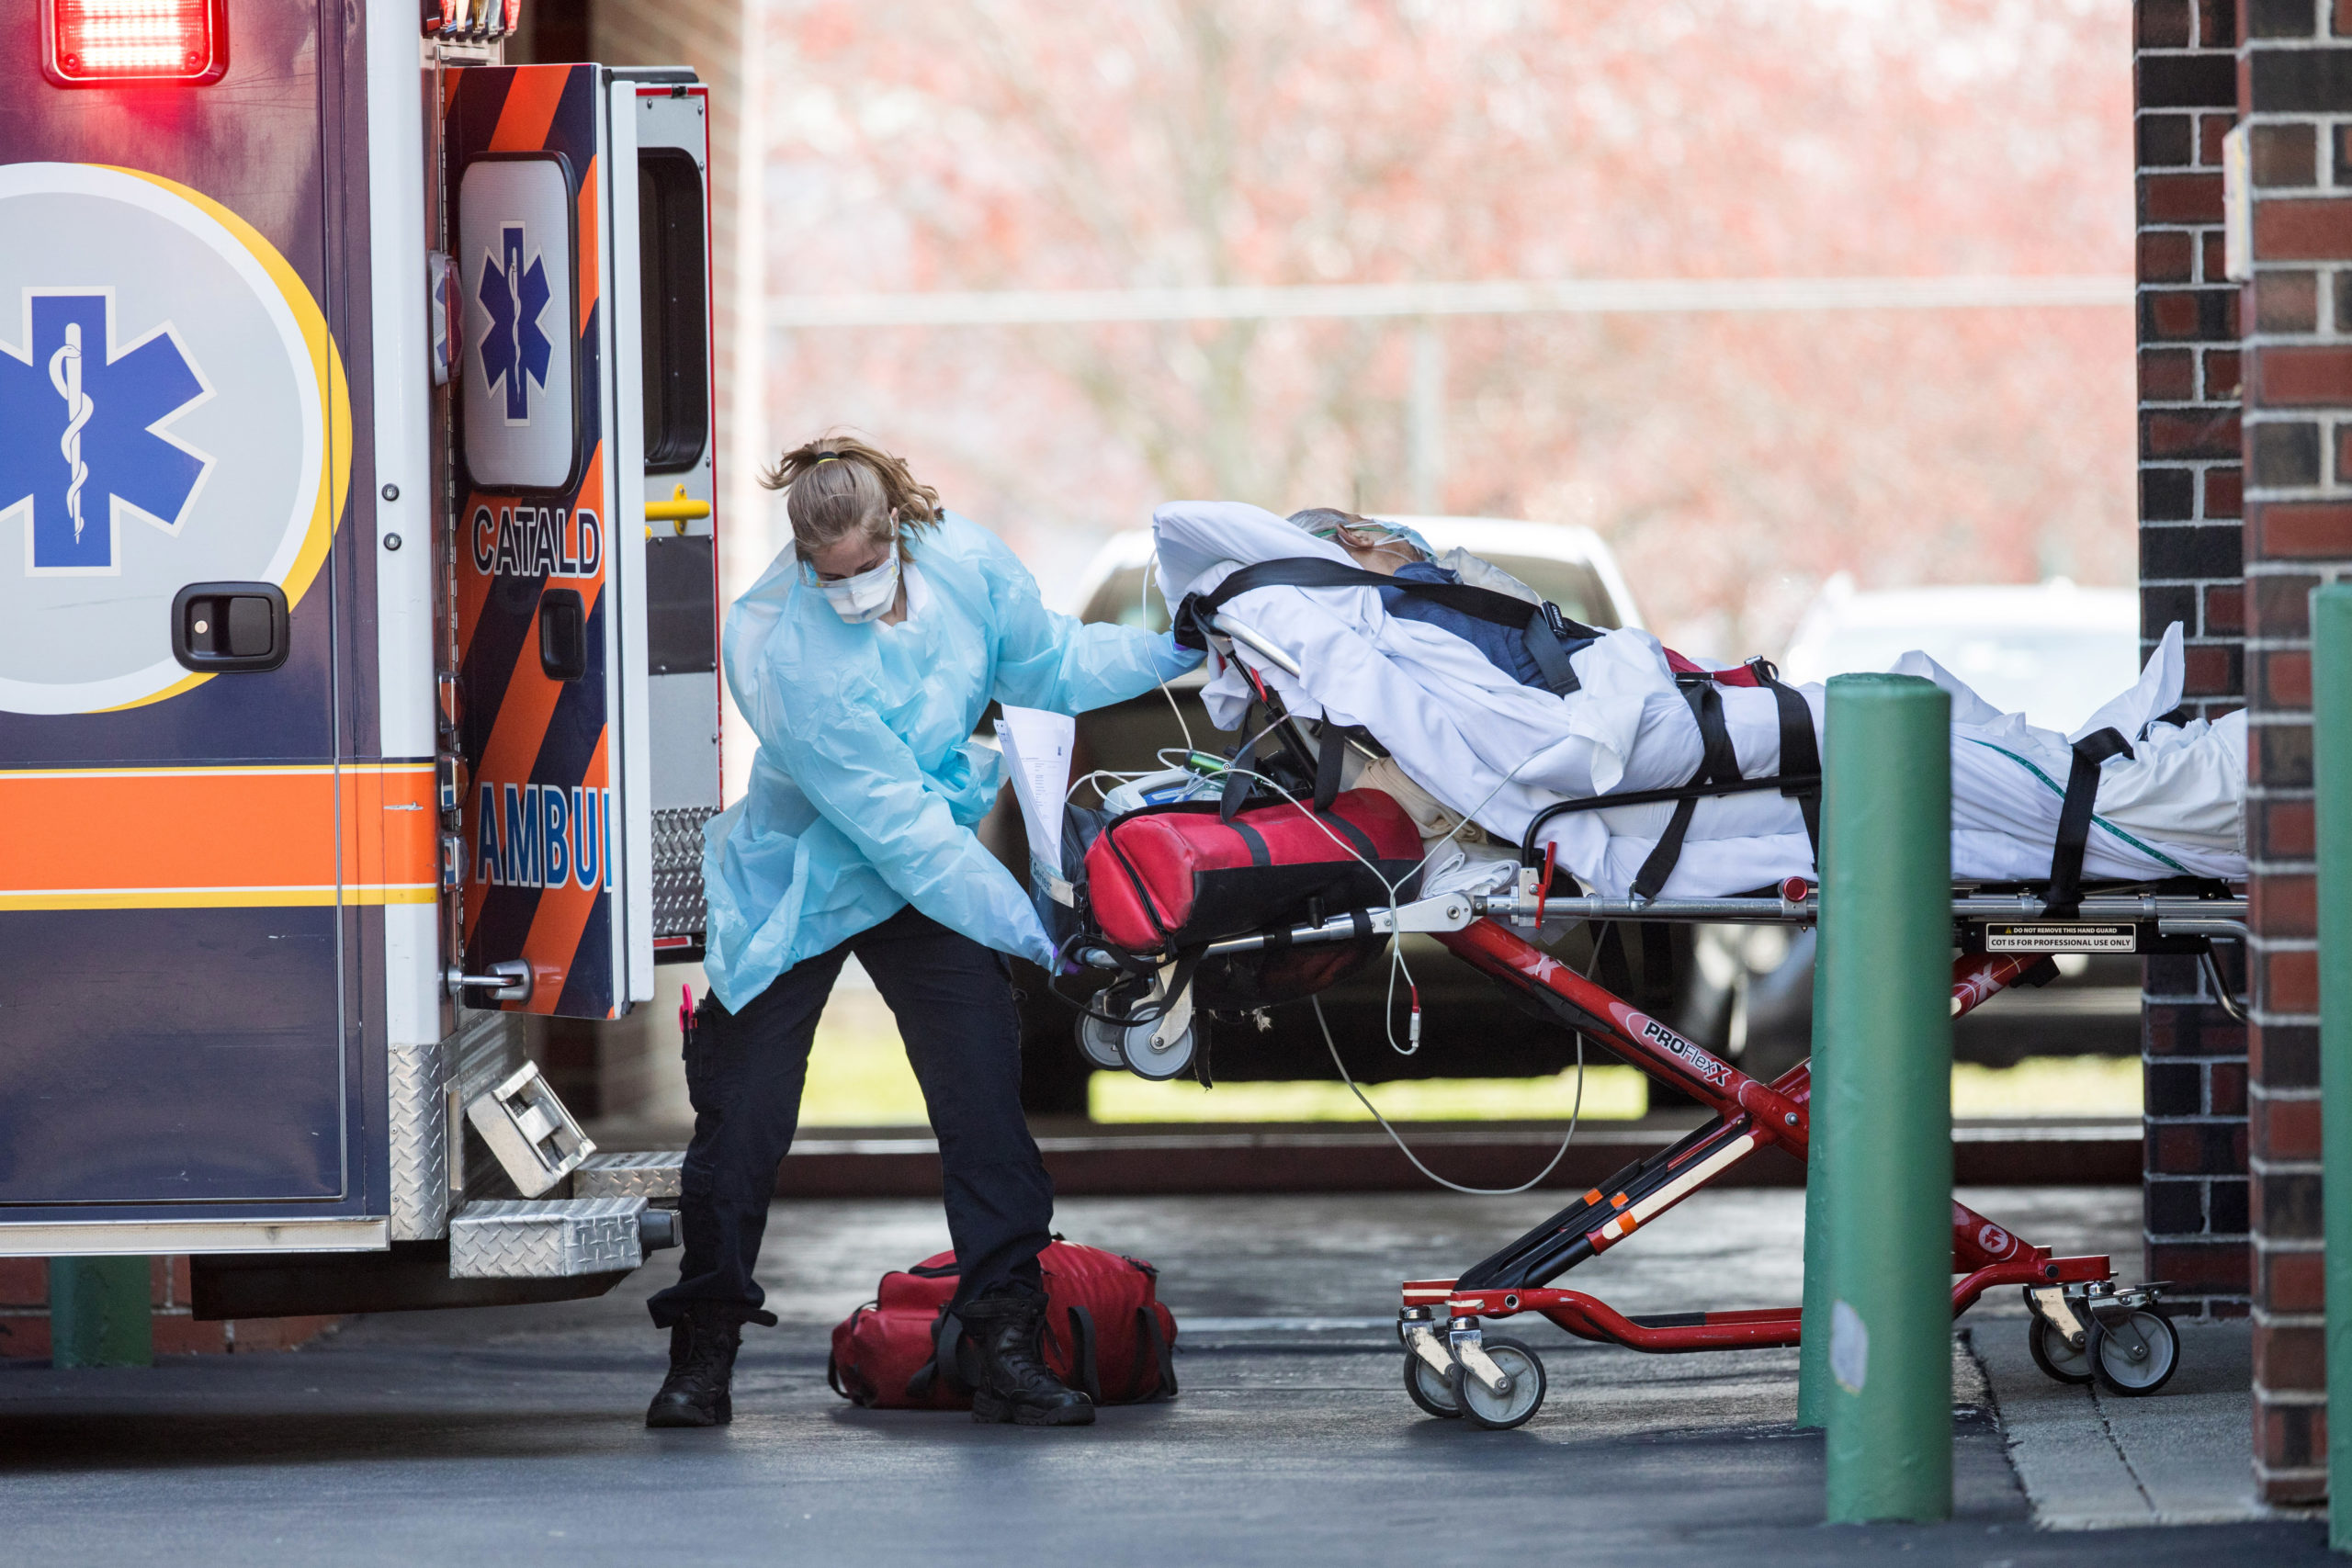 First responders load a patient into an ambulance from a nursing home where multiple people have contracted COID-19 on April 17, 2020 in Chelsea, Massachusetts. (Photo by Scott Eisen/Getty Images)